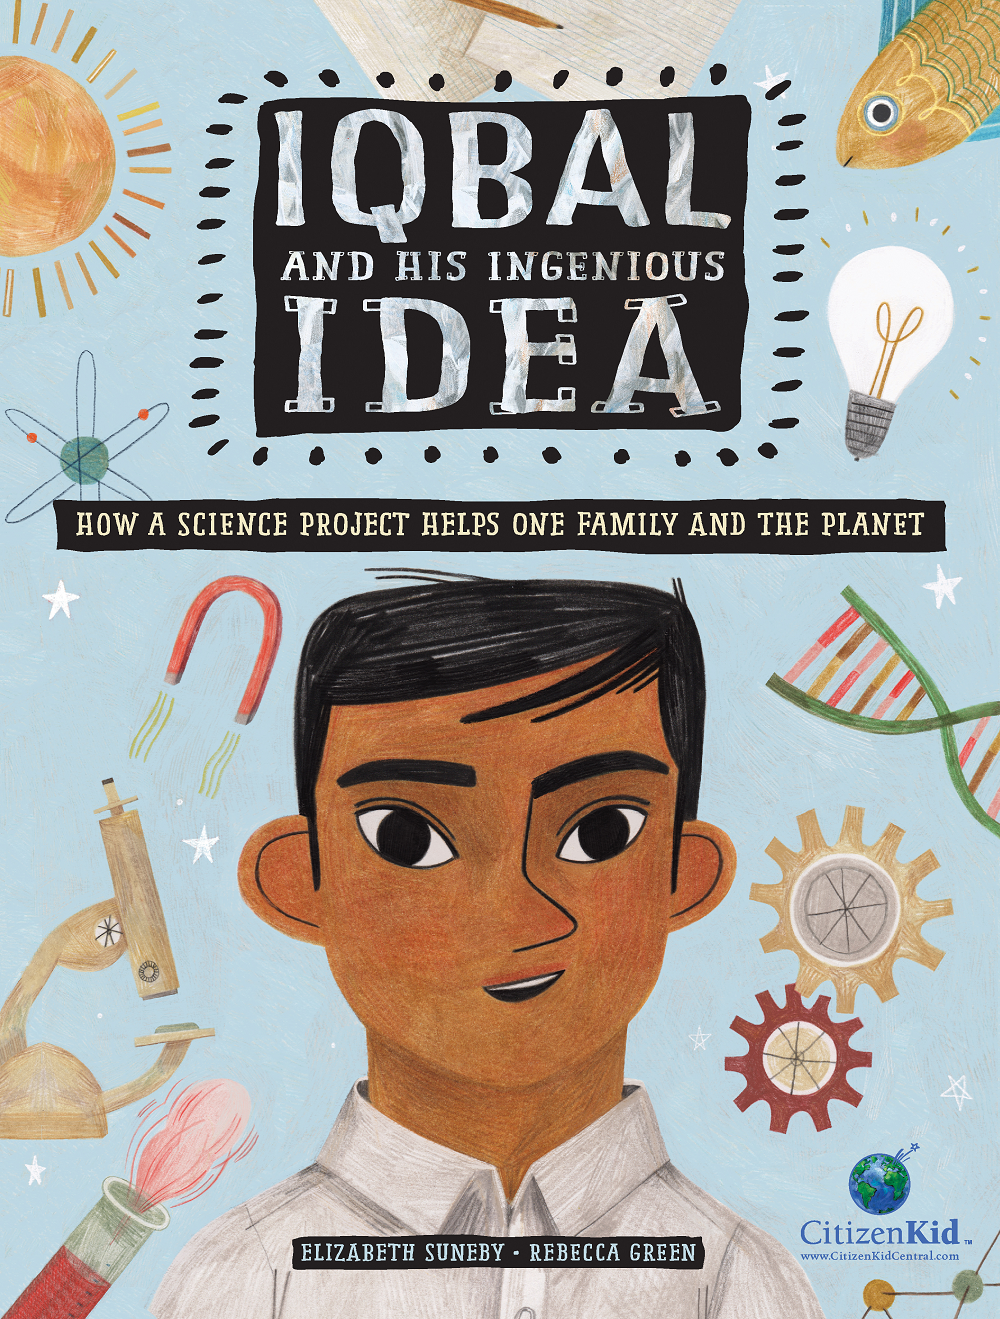 Children's Science Picture Book